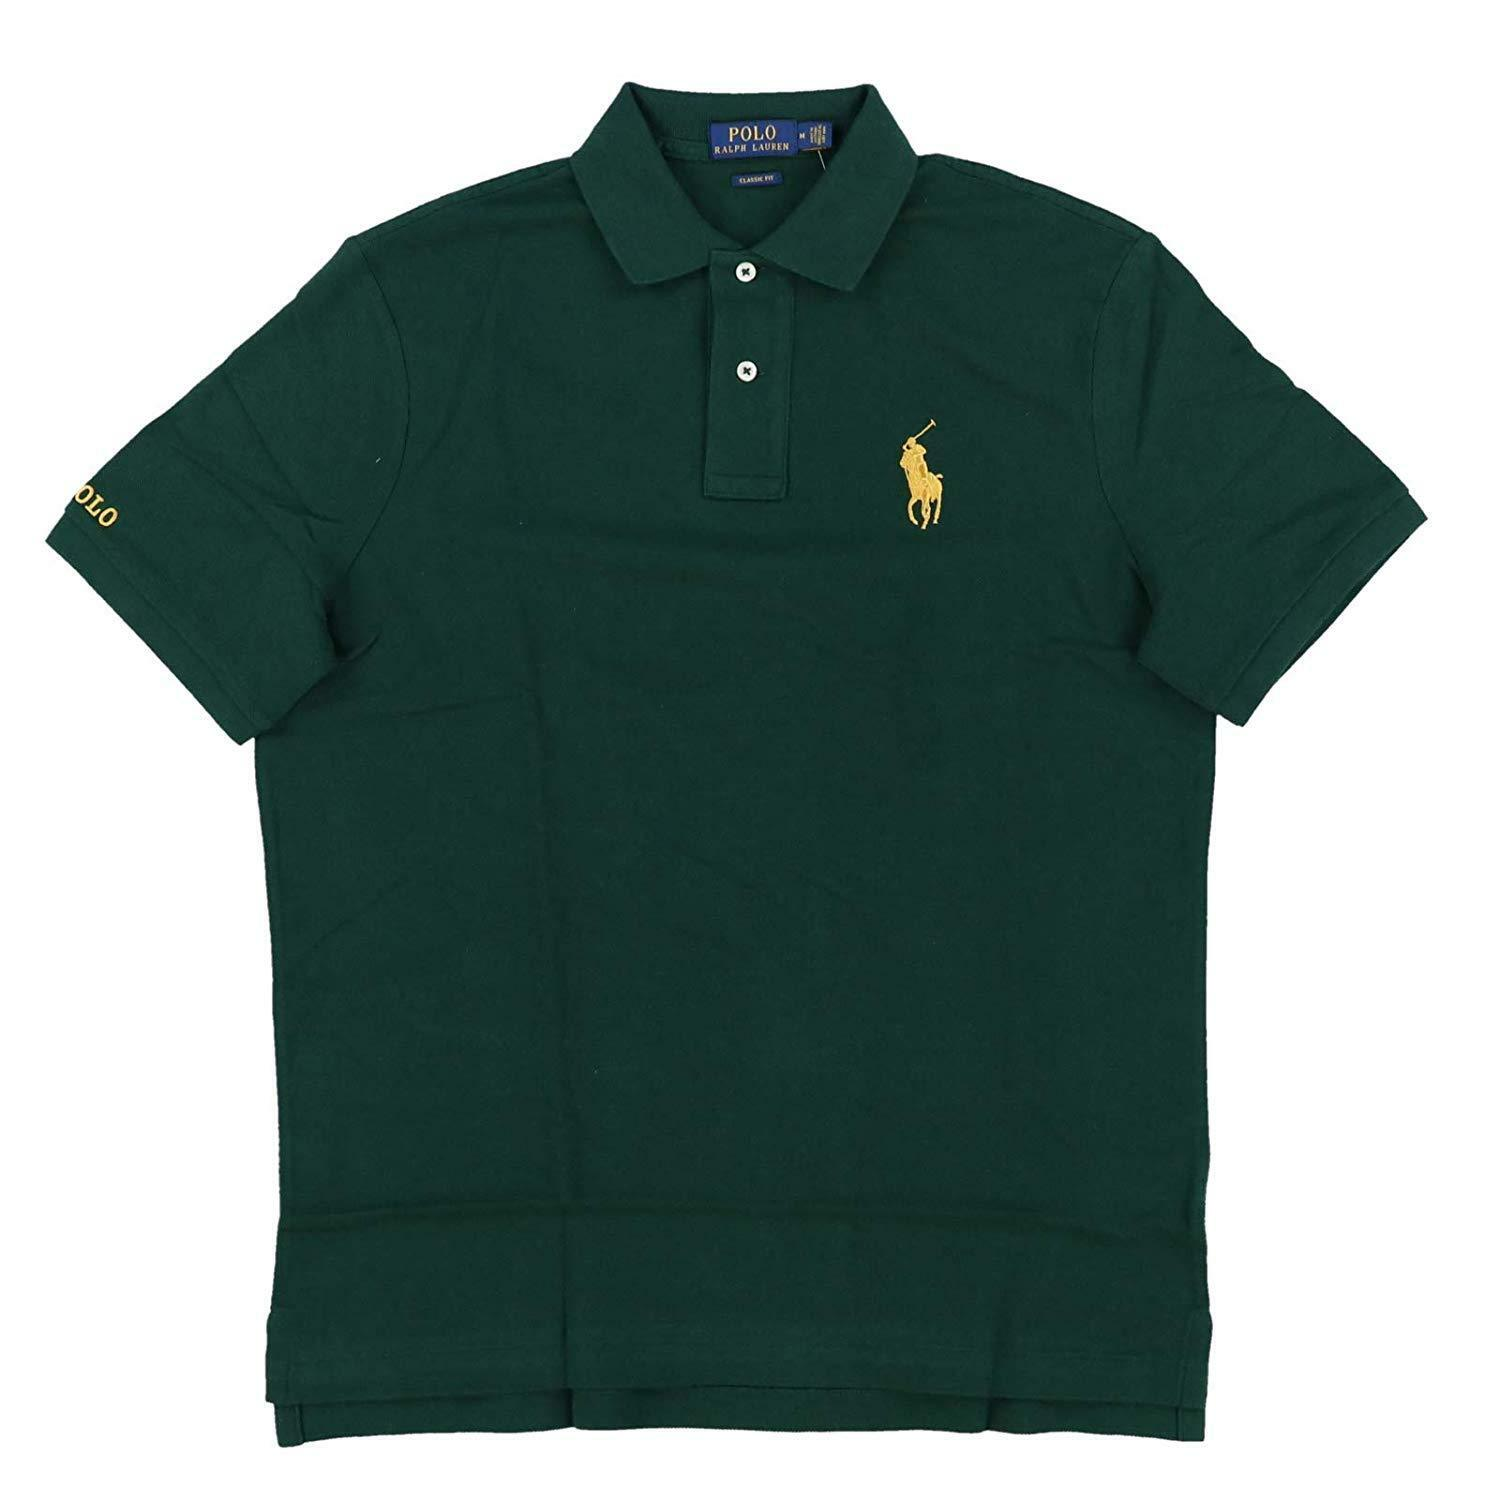 Polo Ralph Lauren Mens Classic Fit Mesh Green with gold Pony Polo Shirt